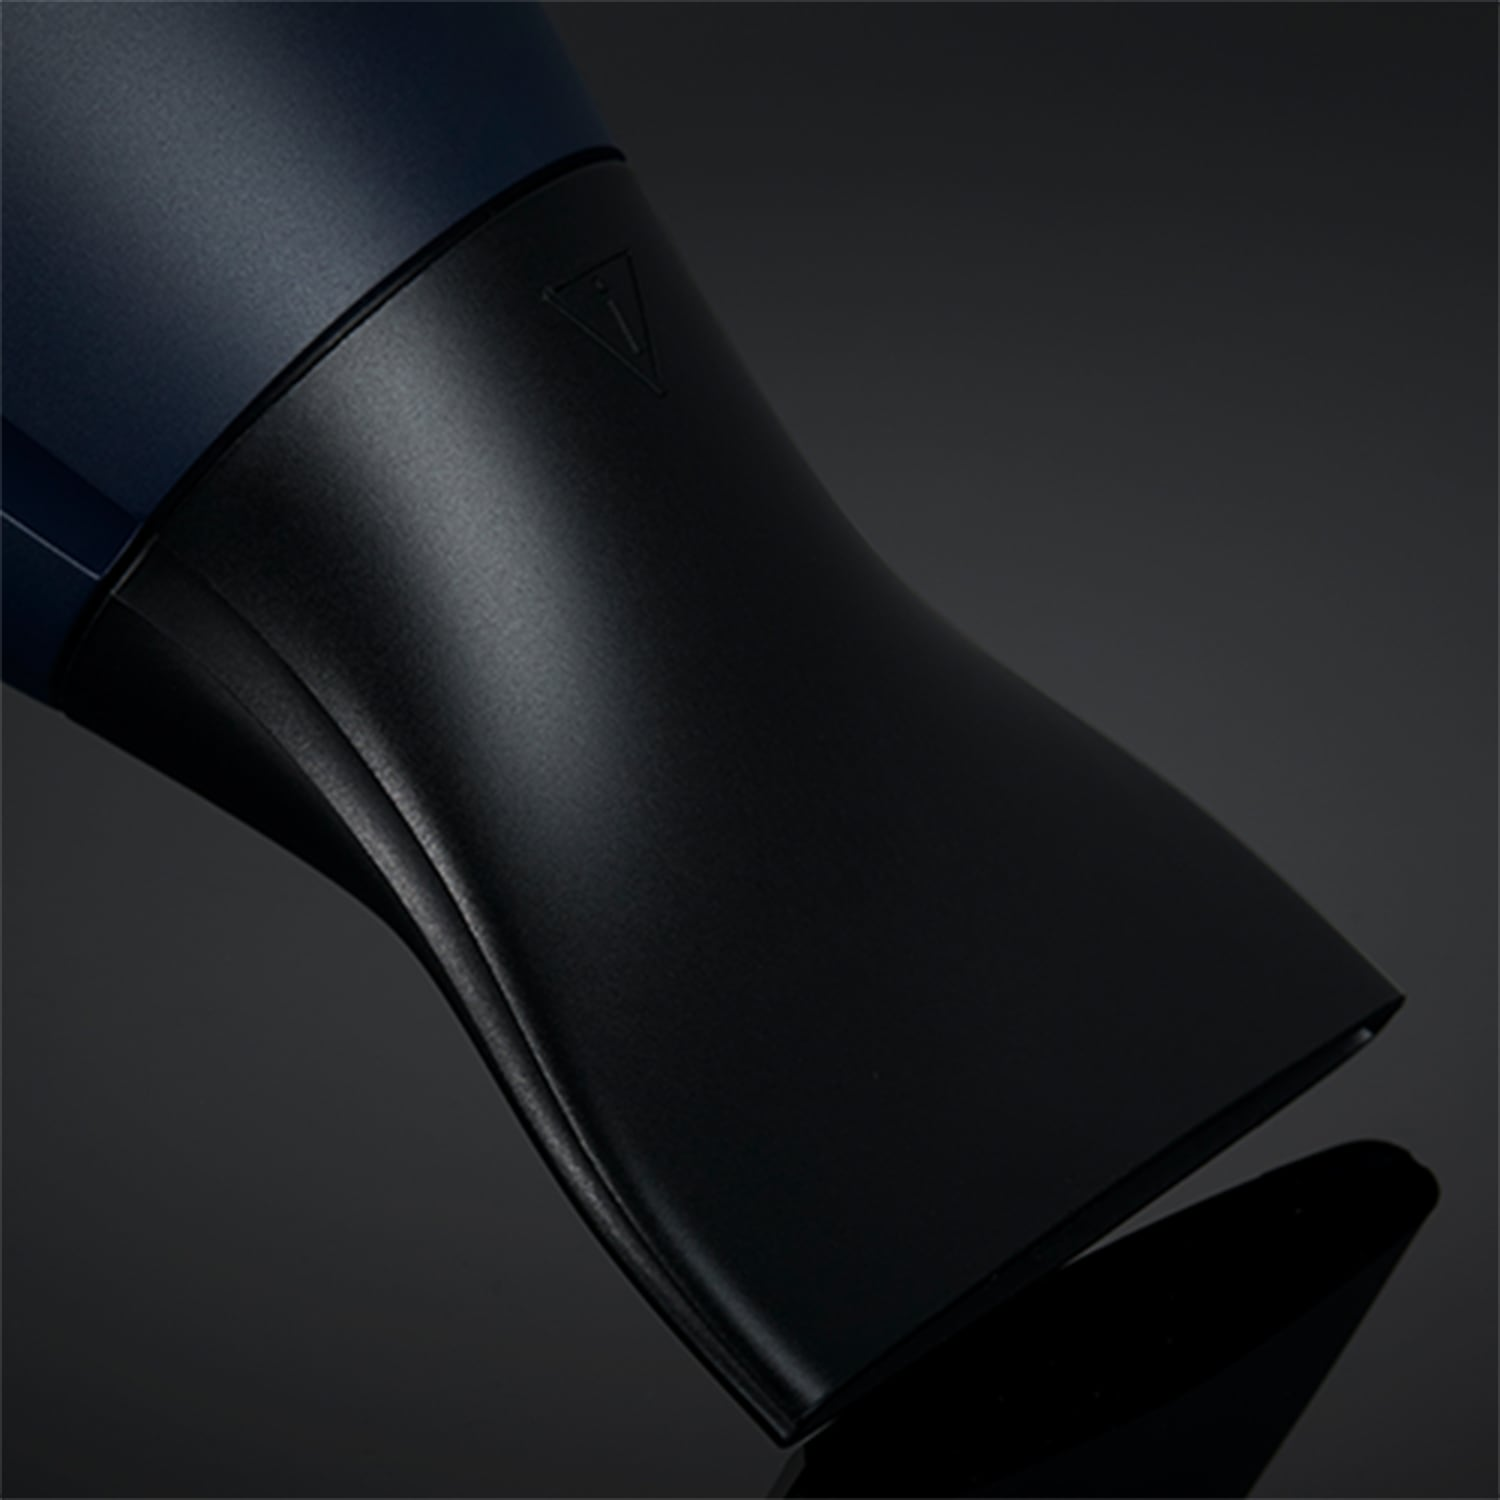 ghd helios hair dryer in navy nozzle image